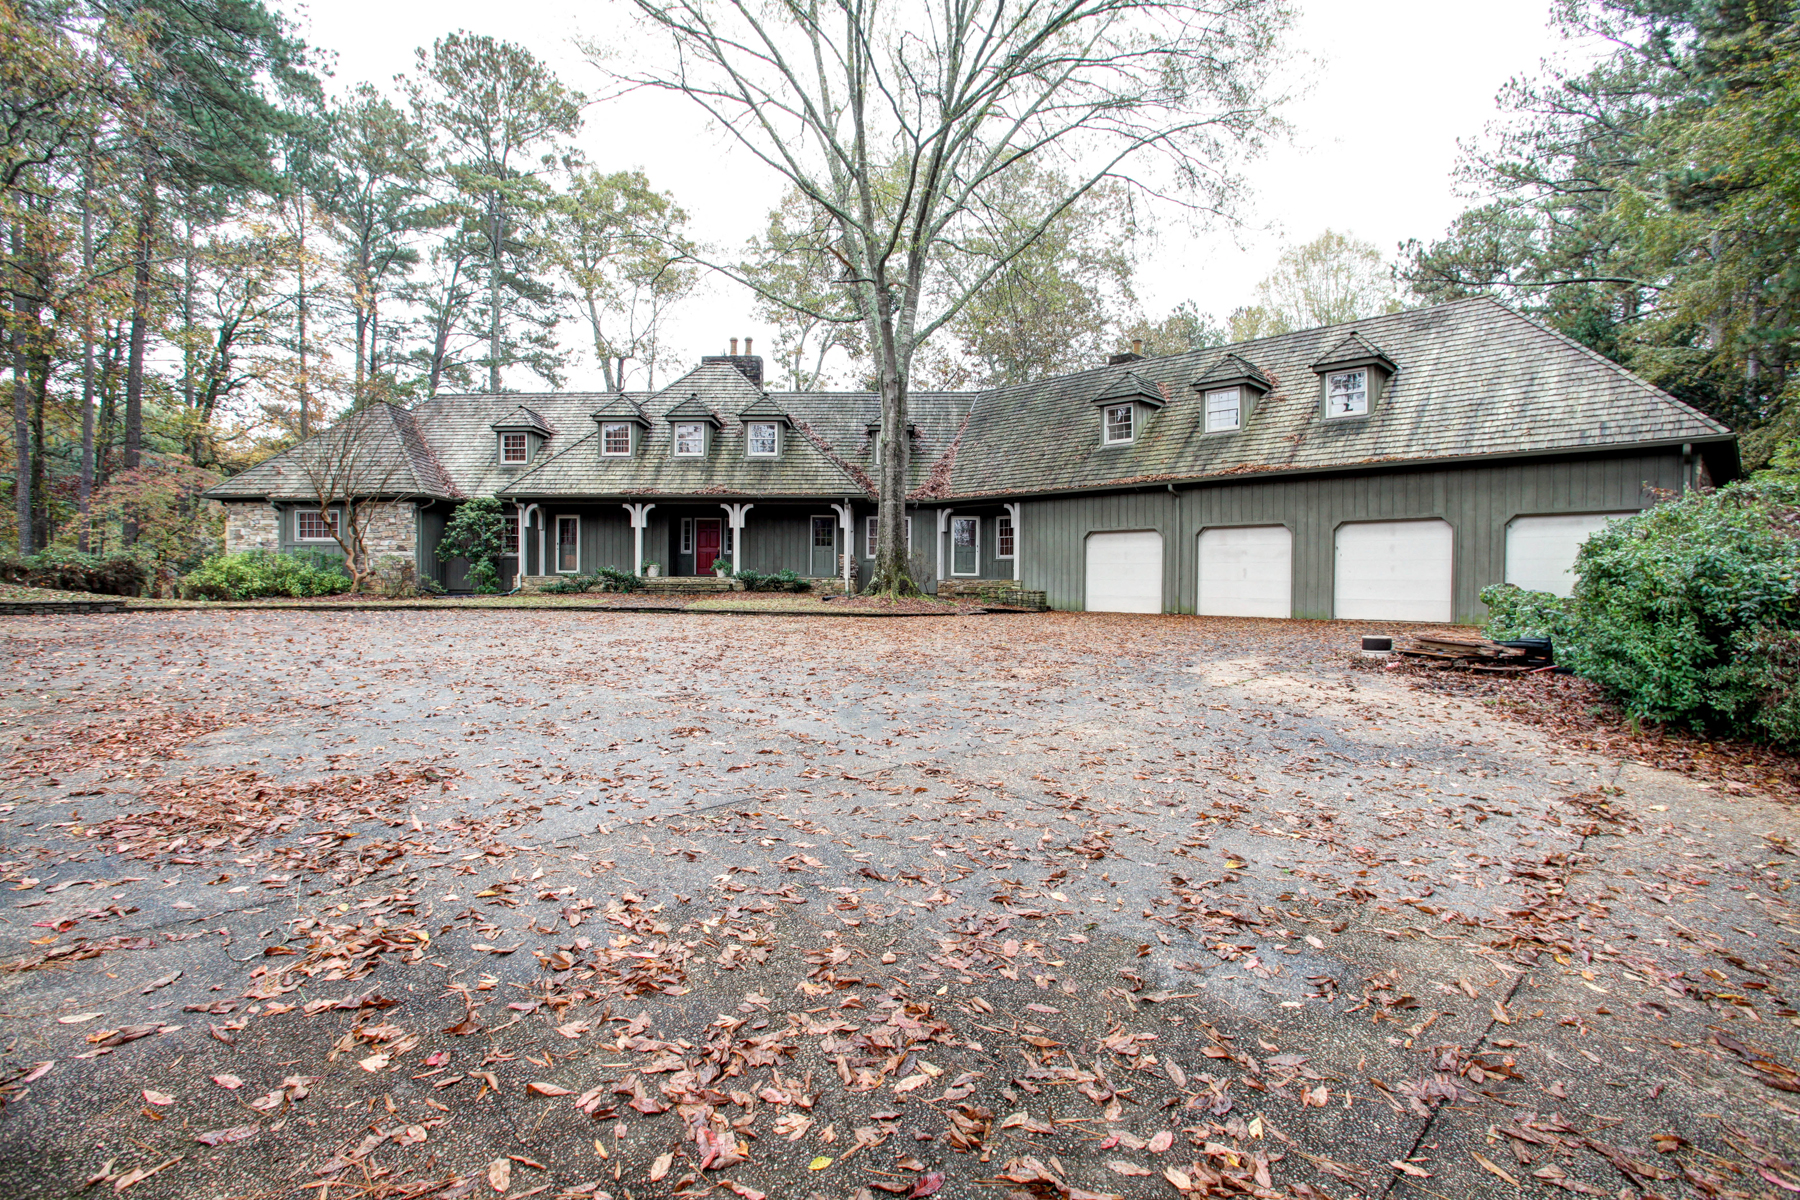 Single Family Home for Sale at Spacious Builder's Home On 3.15 Acres And A Lake 3949 Paul Samuel Road NW Kennesaw, Georgia, 30152 United States